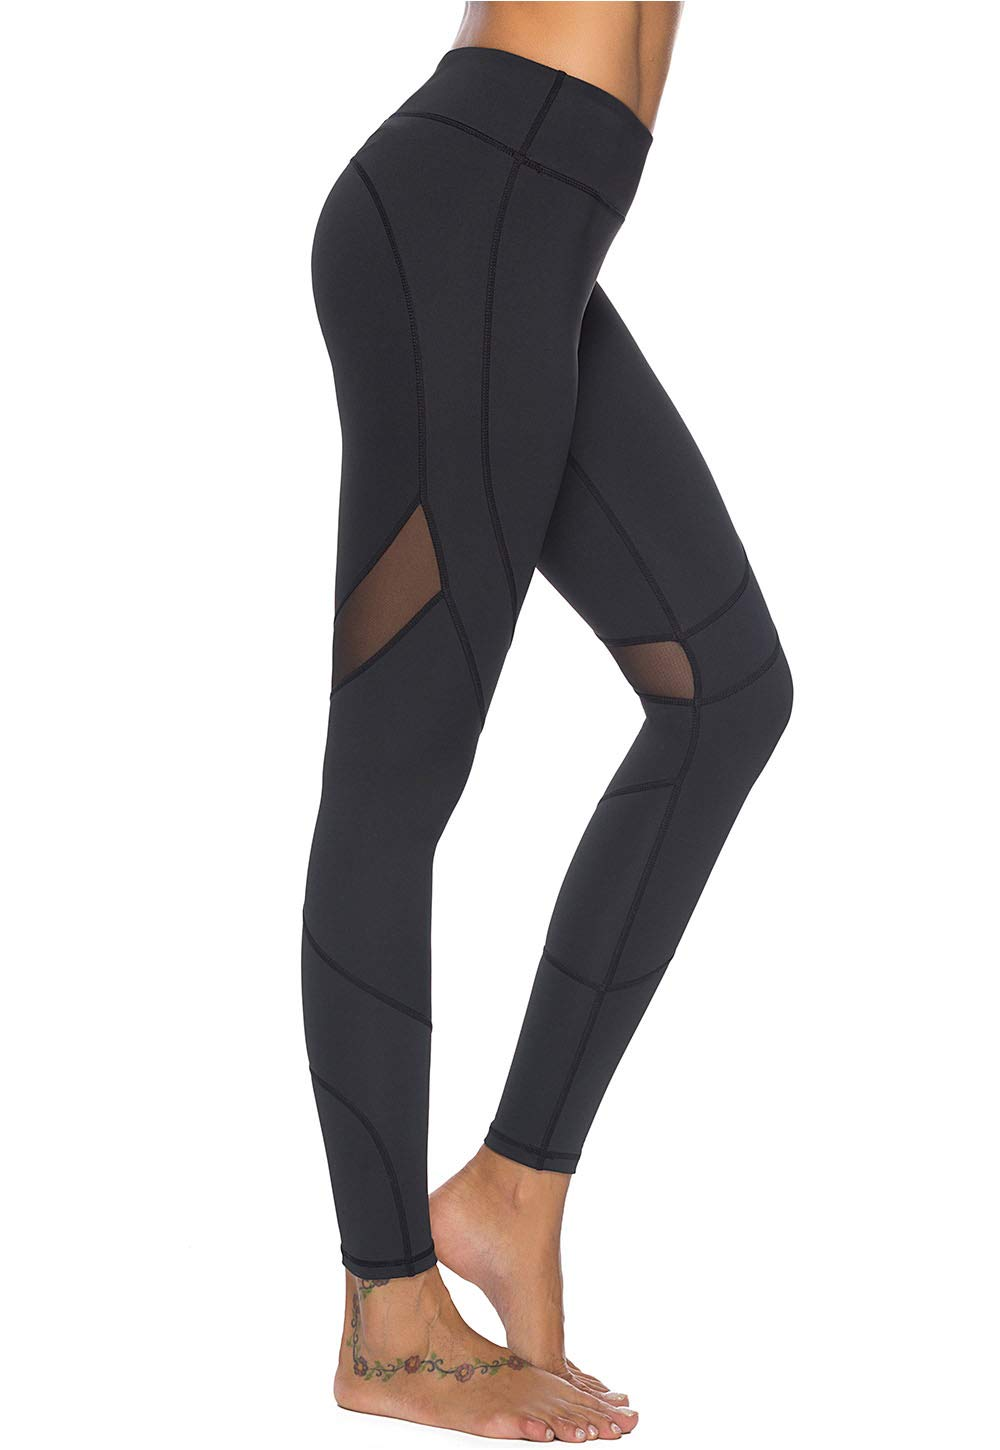 Mint Lilac Women's High Waist Full-Length Leggings Athletic Workout Pants with Mesh Panelss Small Black